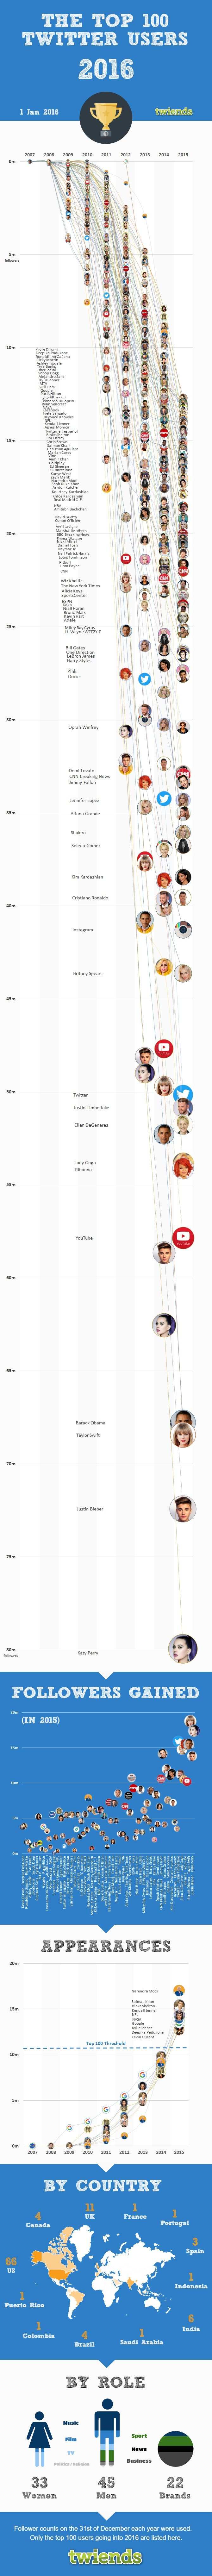 The Race To 100 Million Twitter Followers